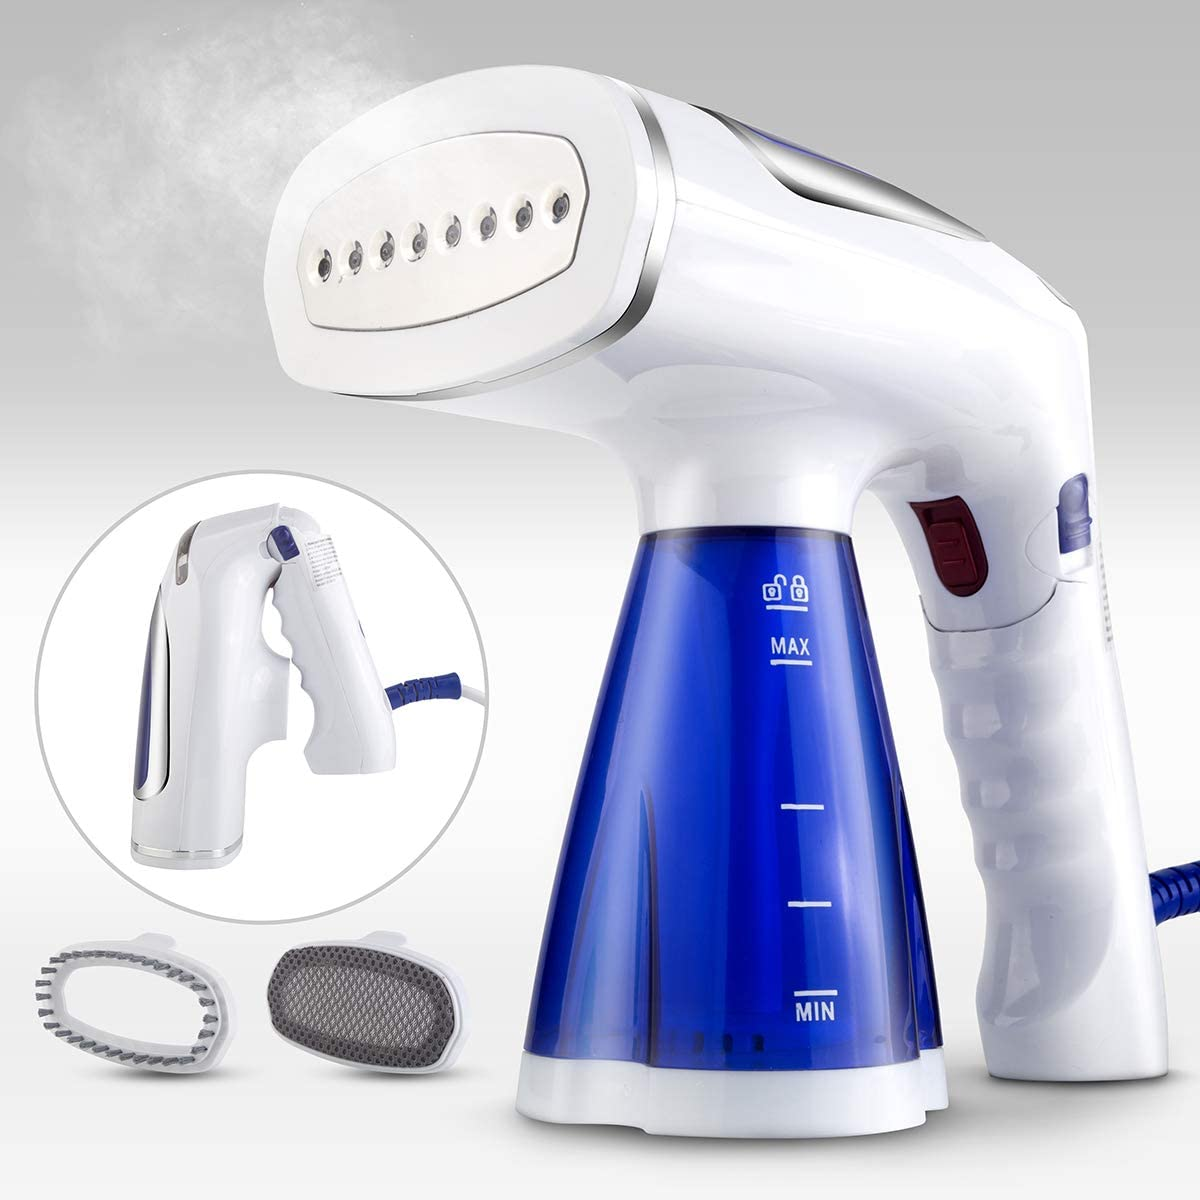 Ysxuan Portable Handheld Steamer for Clothes, 1600w Travel Steamer Iron with 200ml Detachable Water Tank and 2 Clothes Brushes, Handy Foldable Fabric Wrinkle Remover, 40s Fast Heat-up, Leak-Proof